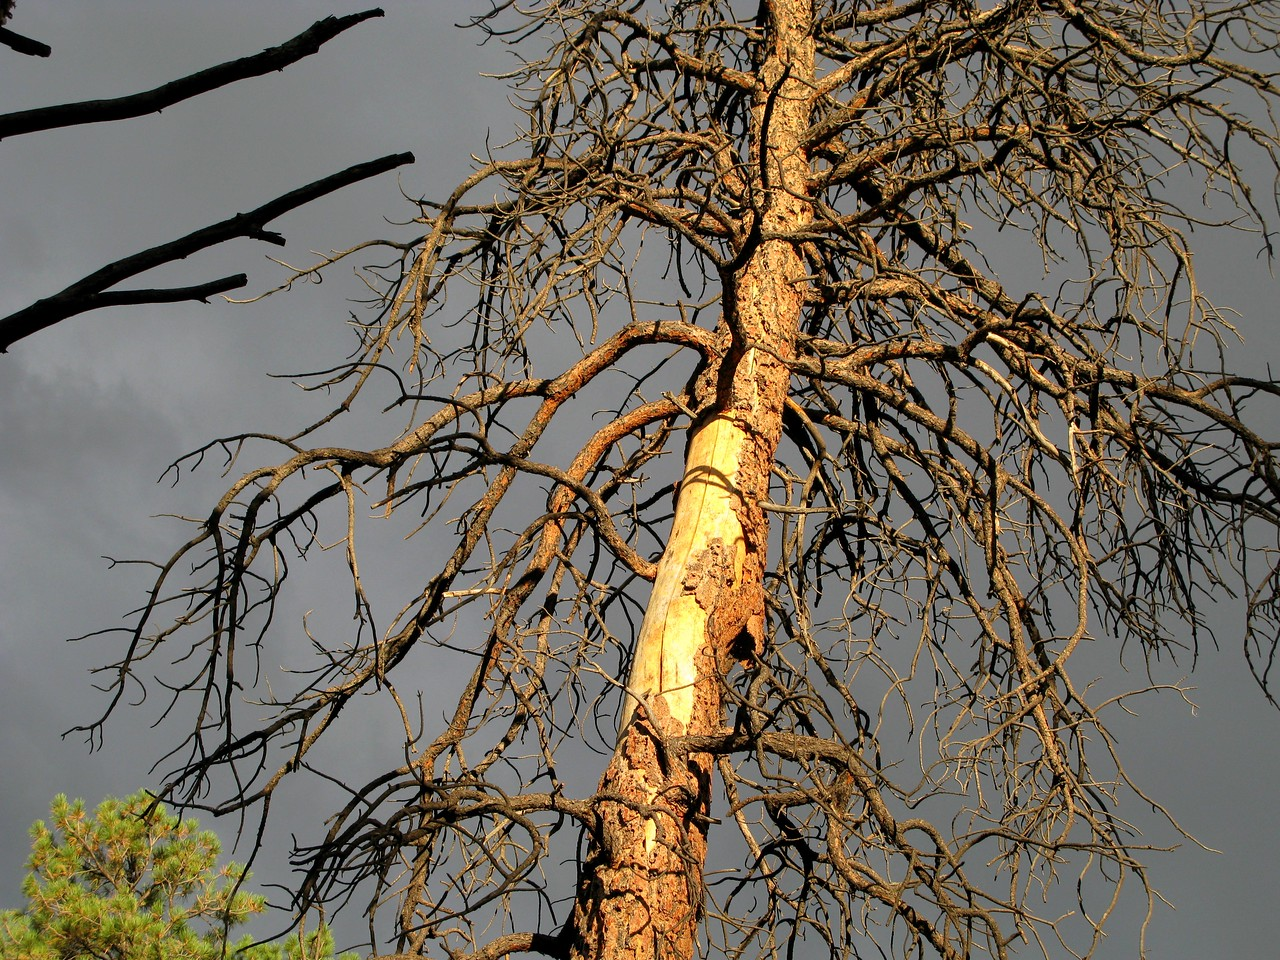 A close-up photo of the damage inflicted to the tree at about the 30 foot level. This was the only tree I located at the site that had impact damage.